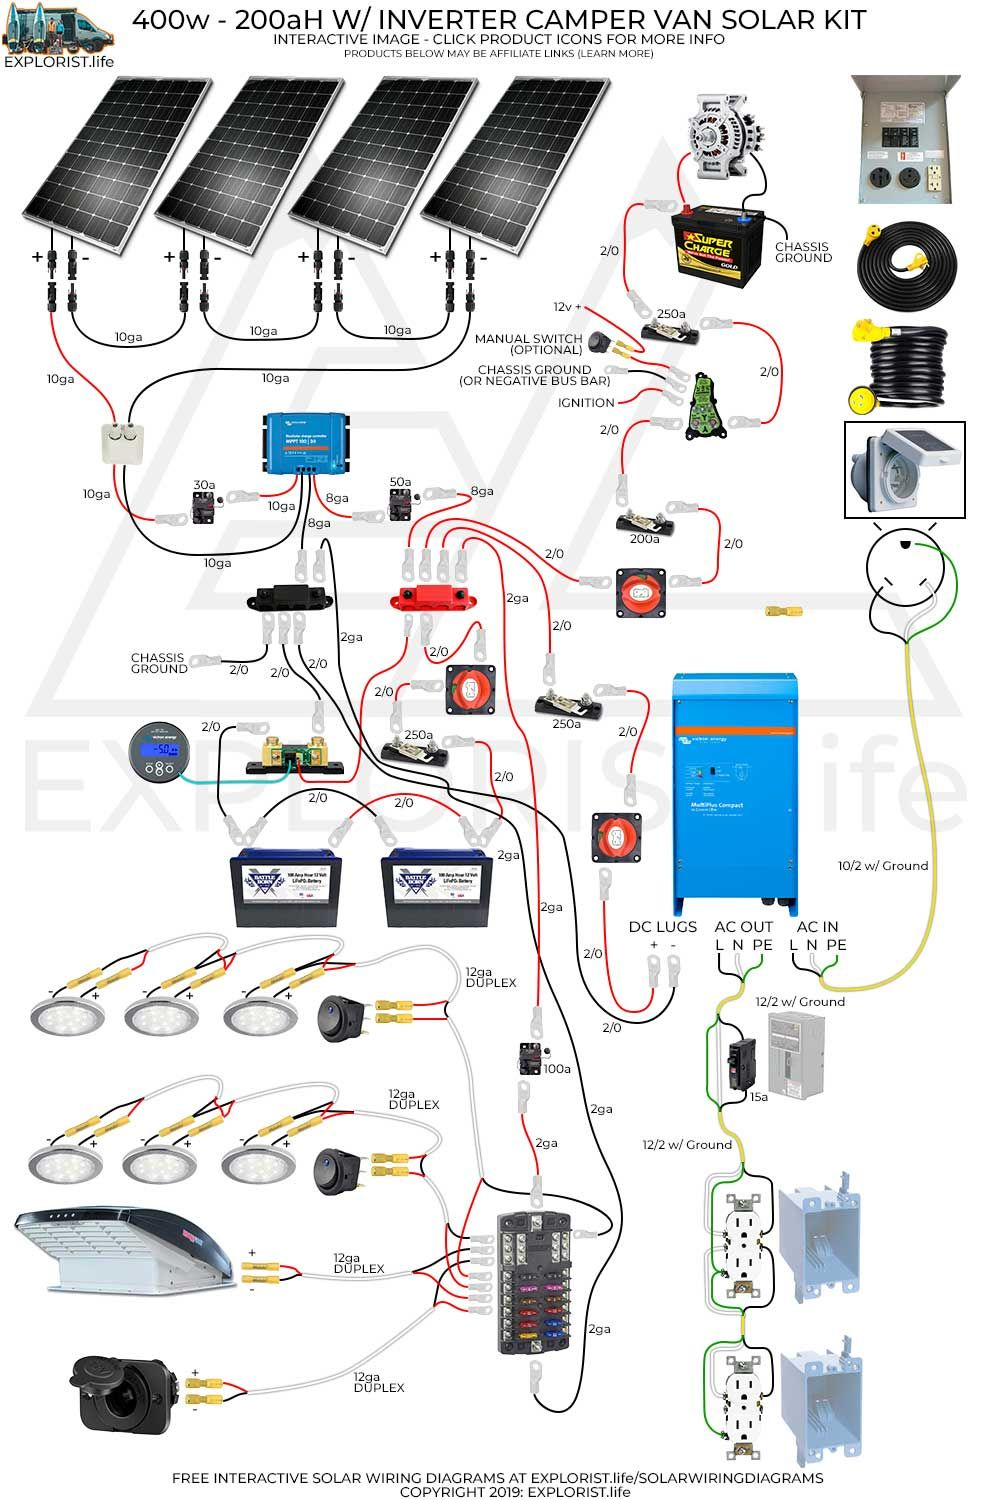 small resolution of free interactive diy solar wiring diagrams for campers van s rv s explorist life